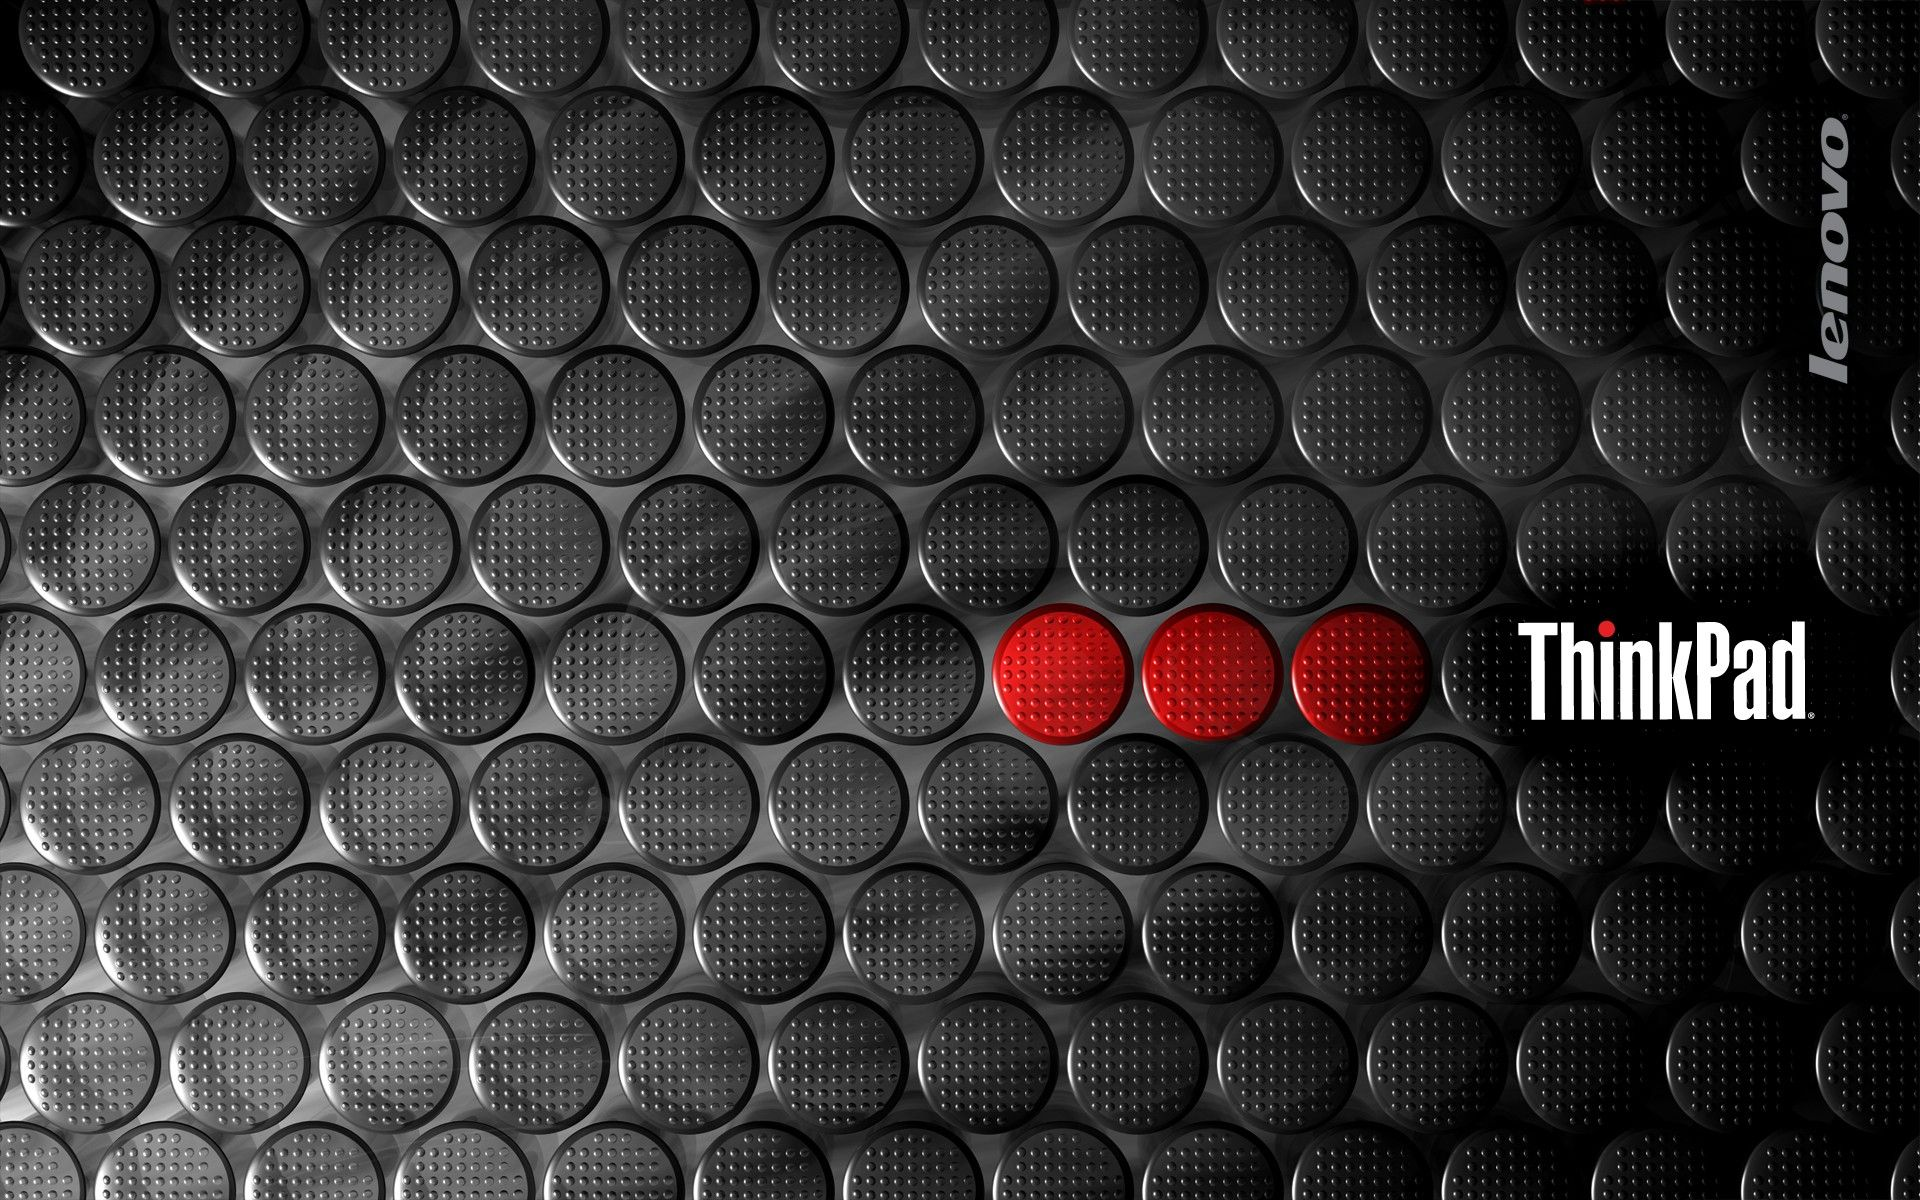 Lenovo Thinkpad Wallpapers Download Free | PixelsTalk Net